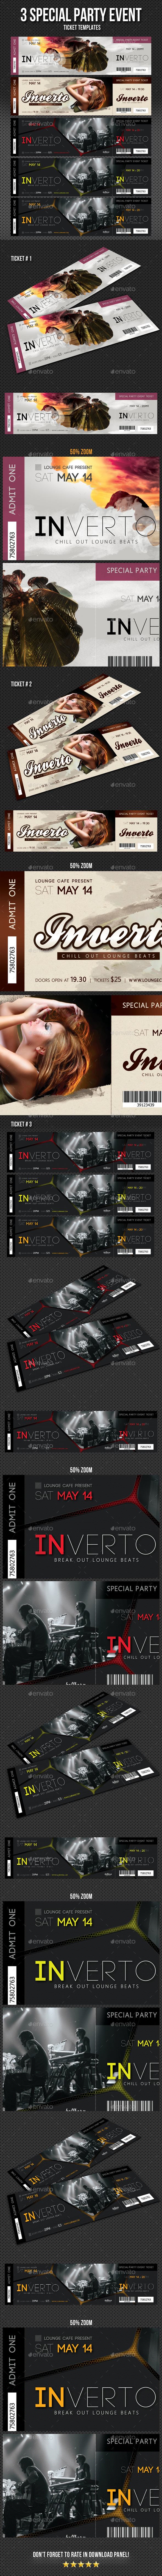 3 in 1 Special Party Event Ticket Bundle V04 - Cards & Invites Print Templates